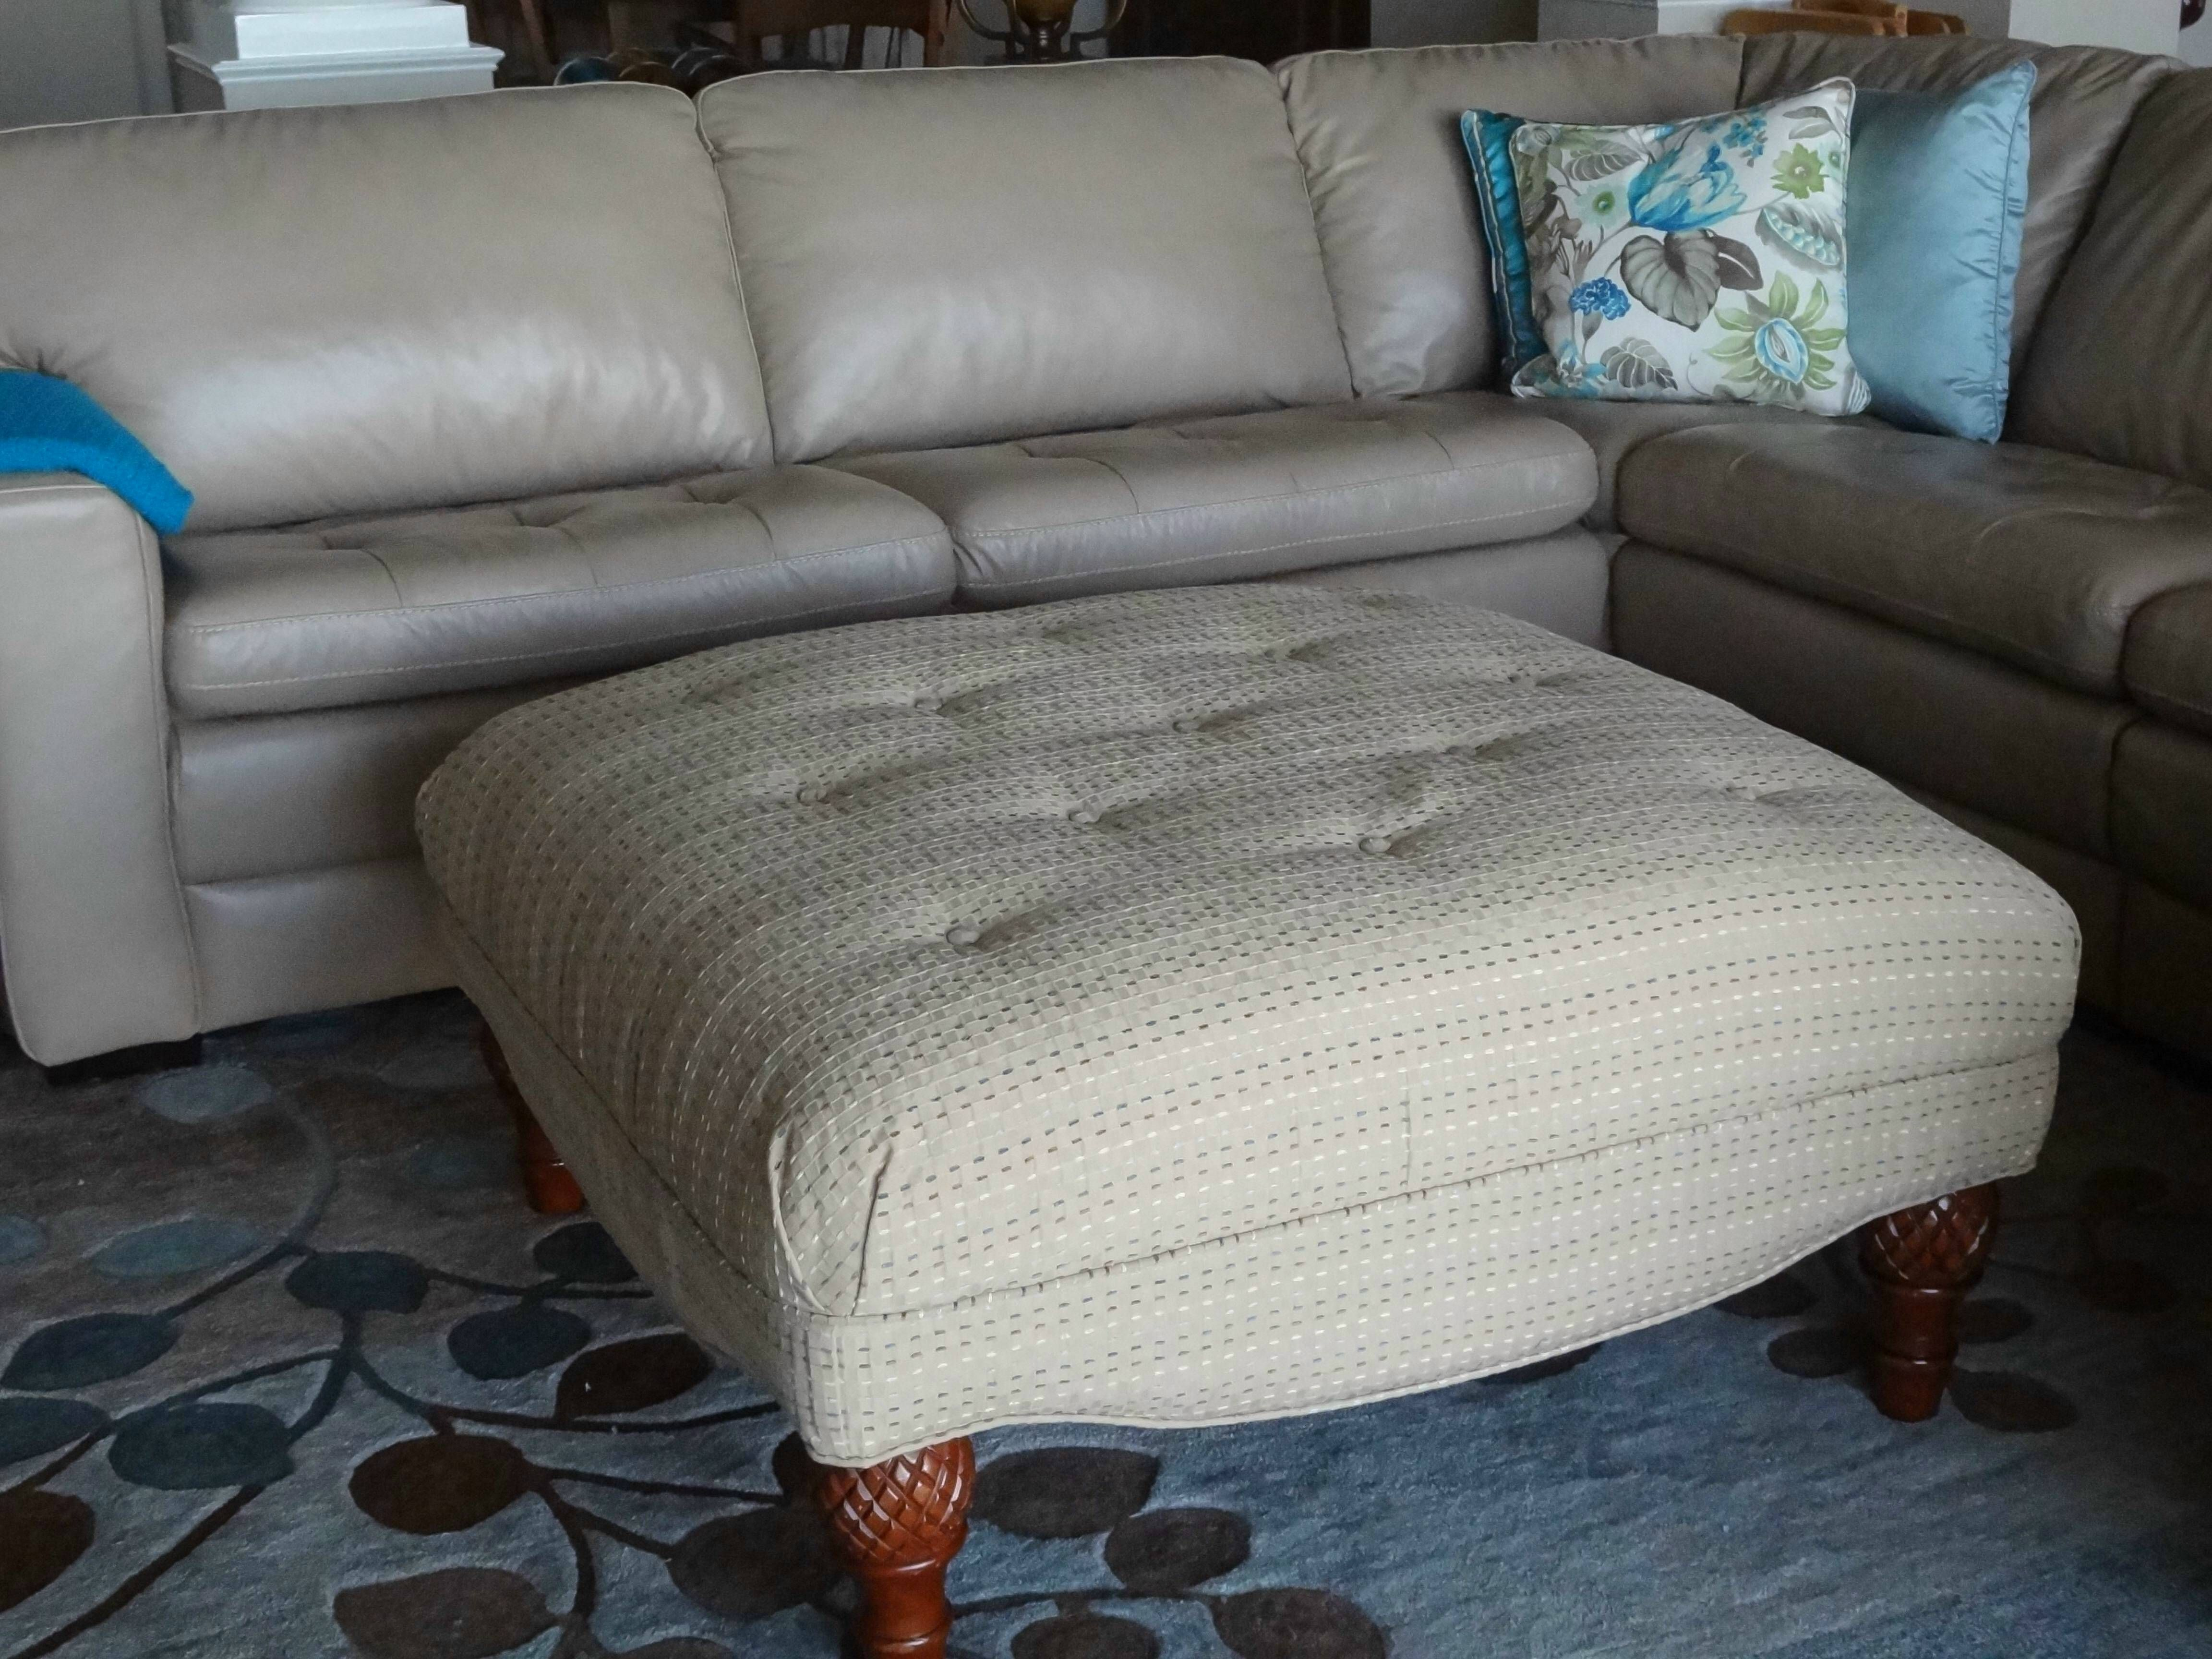 This Slipcover Hides A Button Tufted Top Client Wanted Buttons But With A Smooth Top Velcro Secures The Slipcove Custom Slipcovers Slipcovers Tufting Buttons